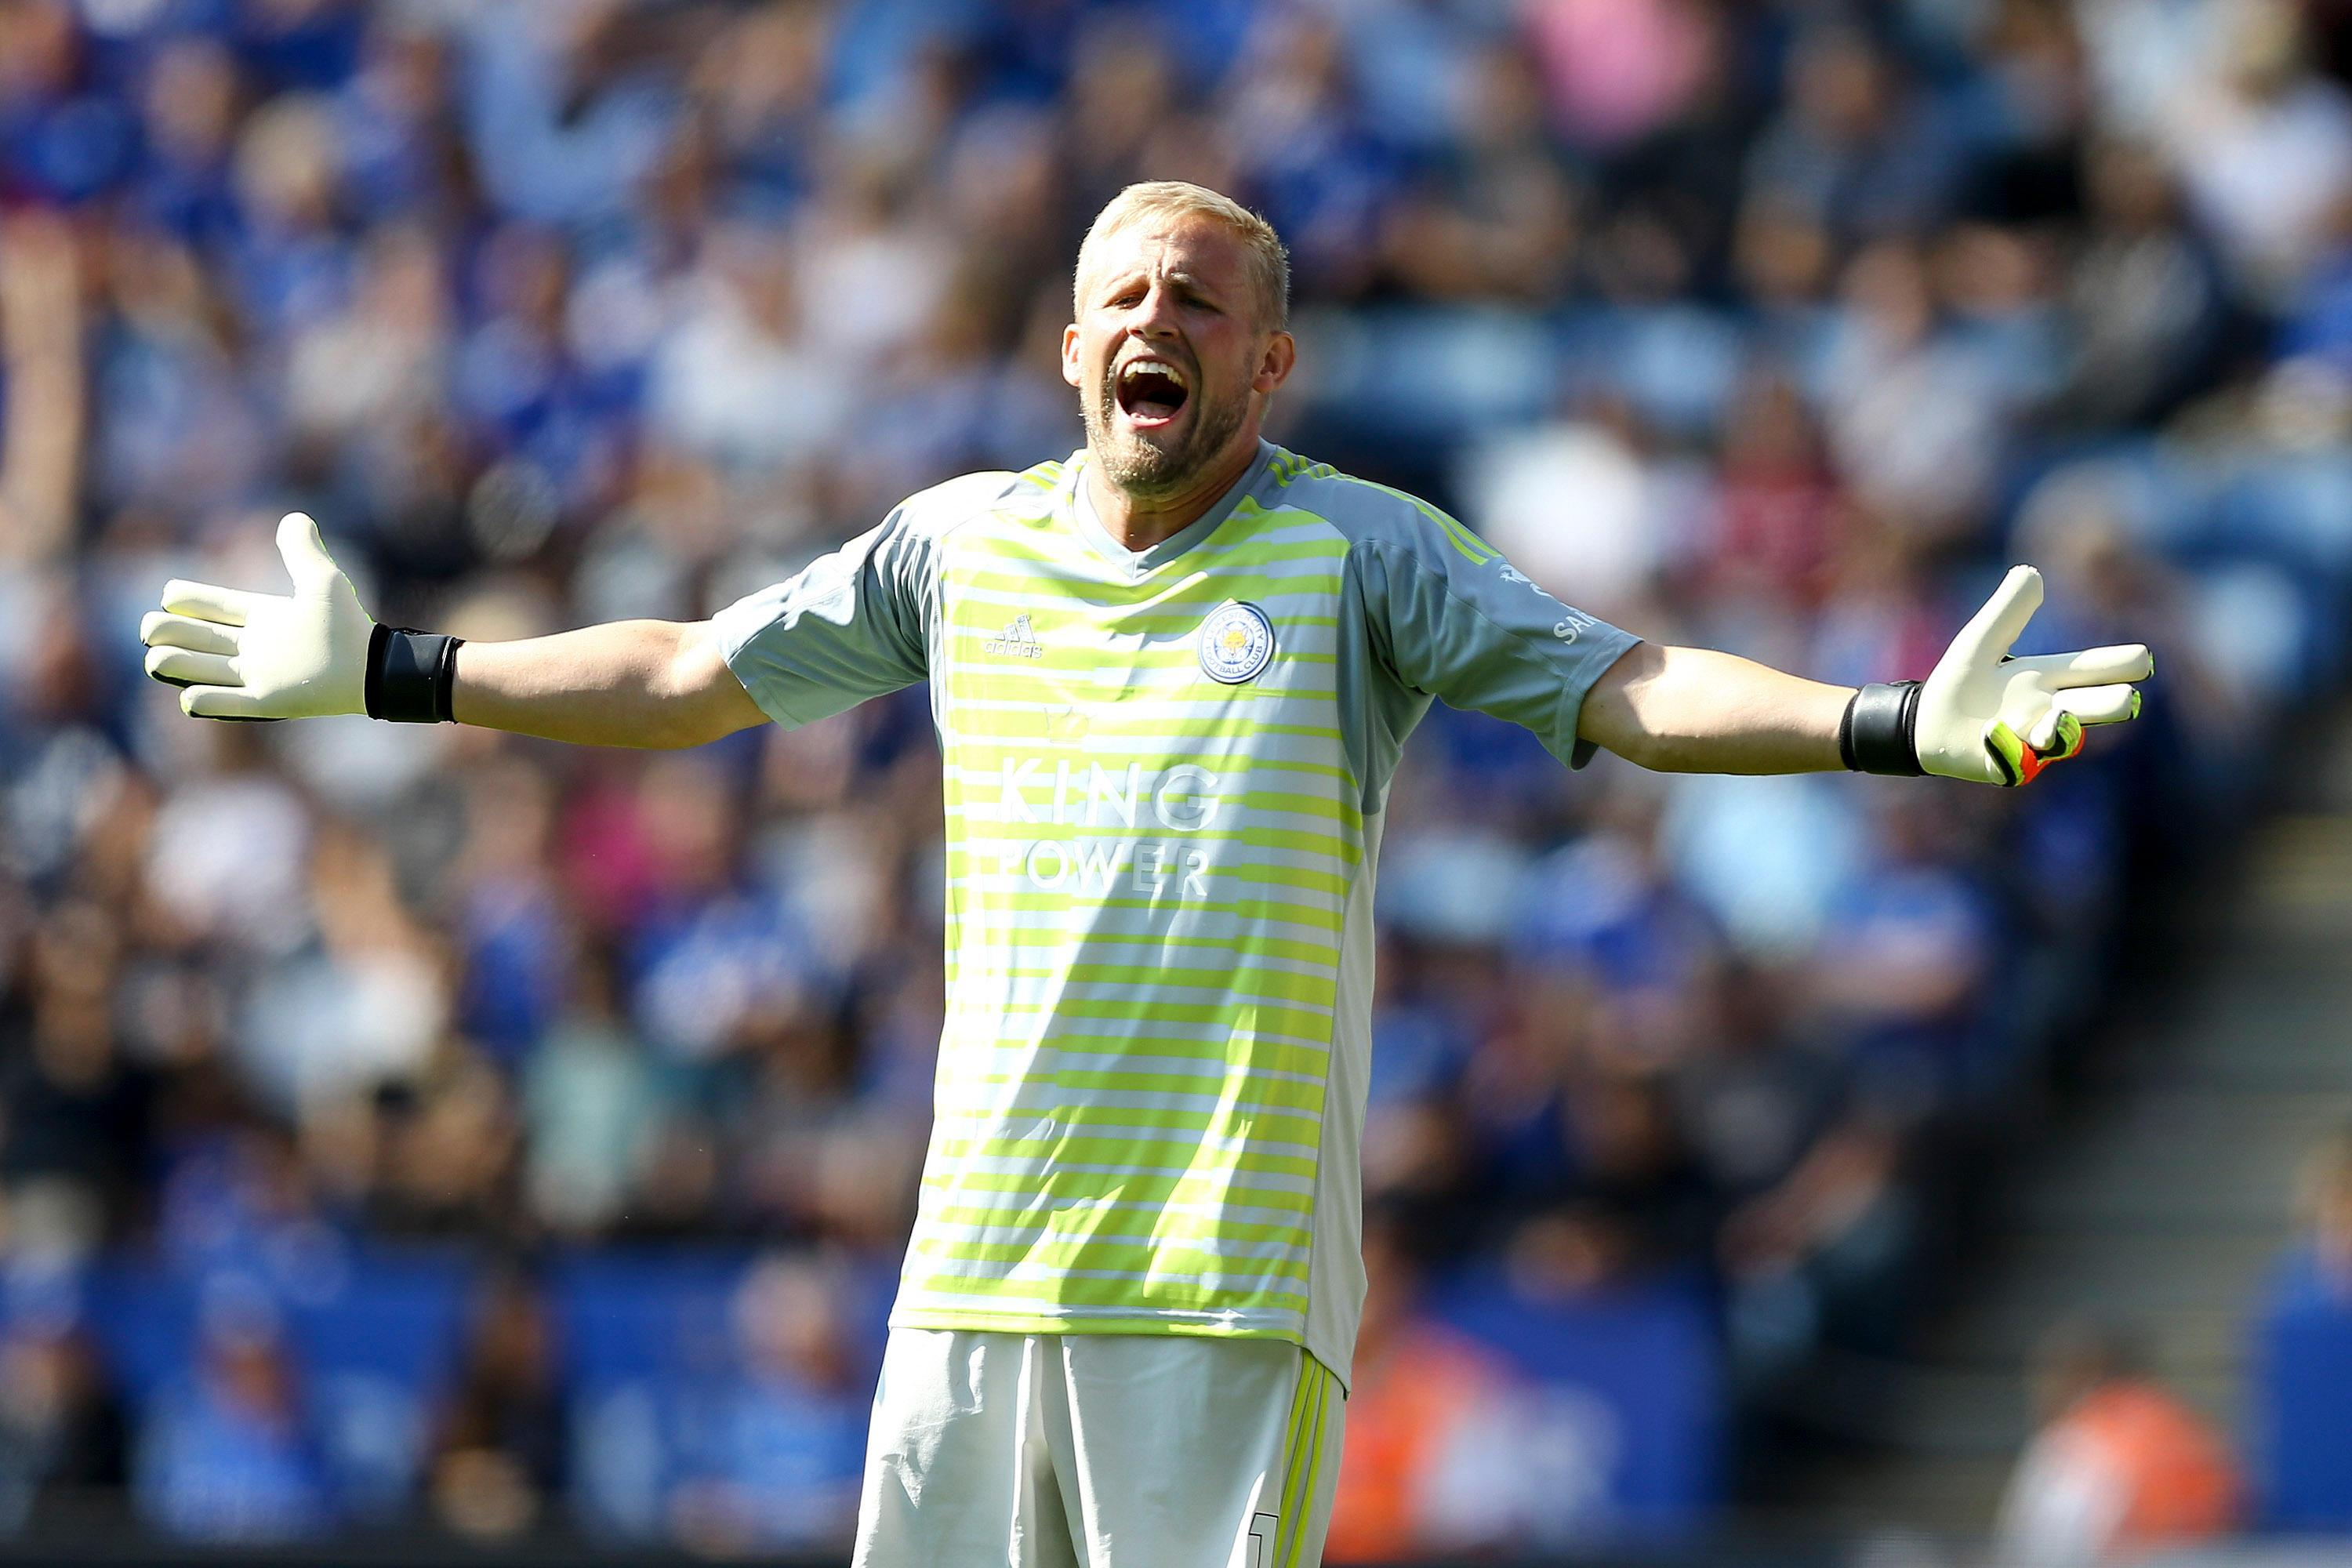 Kasper Schmeichel will not feature for Denmark against Slovakia or Wales, with only uncapped players in the squad